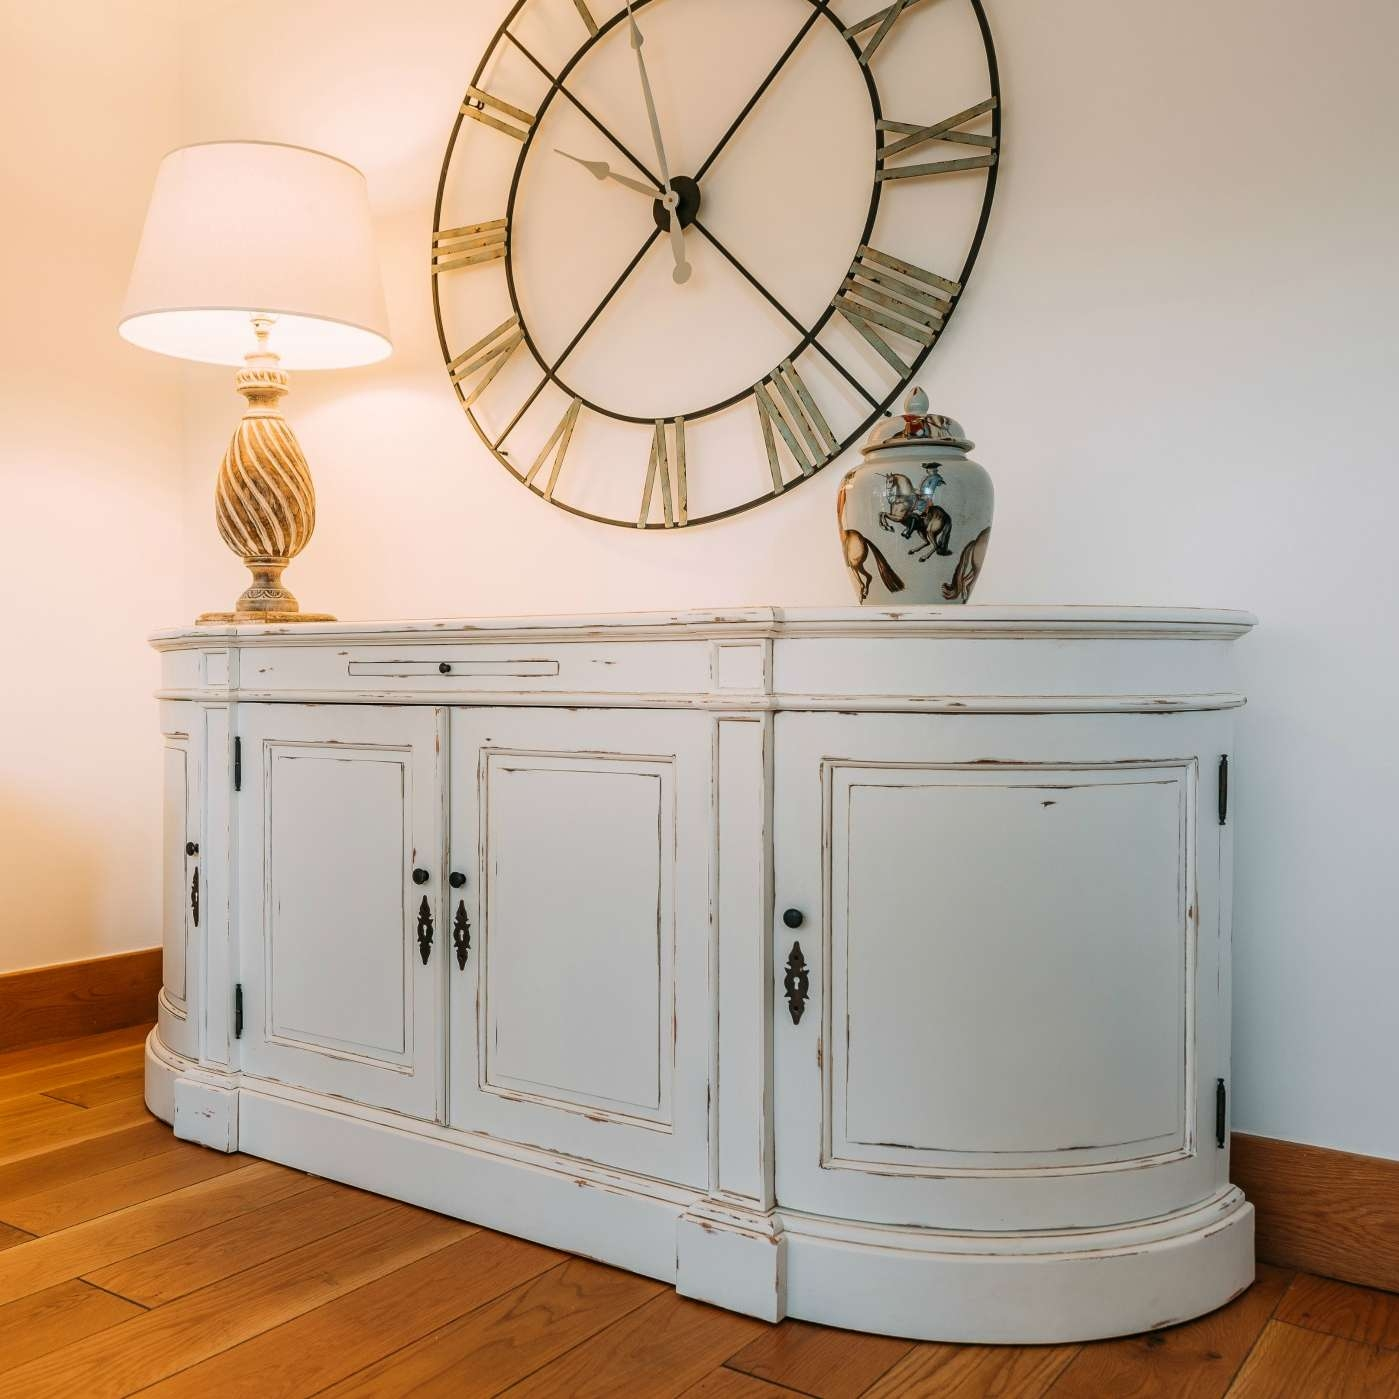 Aged French Distressed White Large Sideboard Furniture – La Maison Within Distressed Sideboards (View 13 of 20)